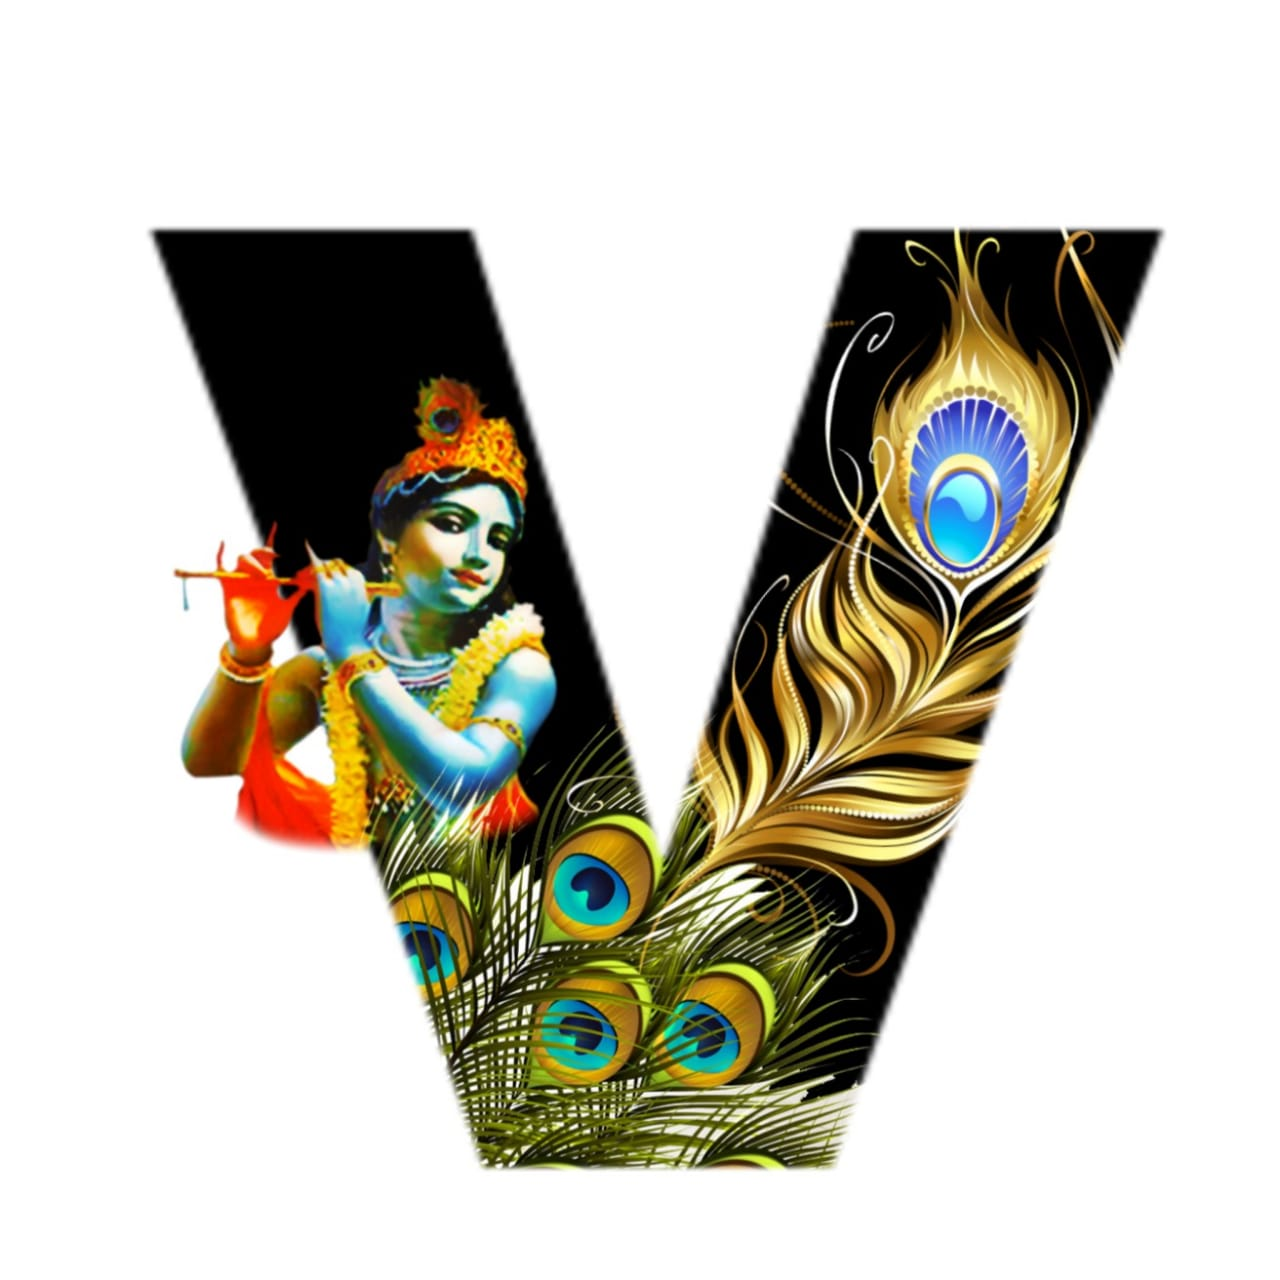 shree krishna alphabet v images